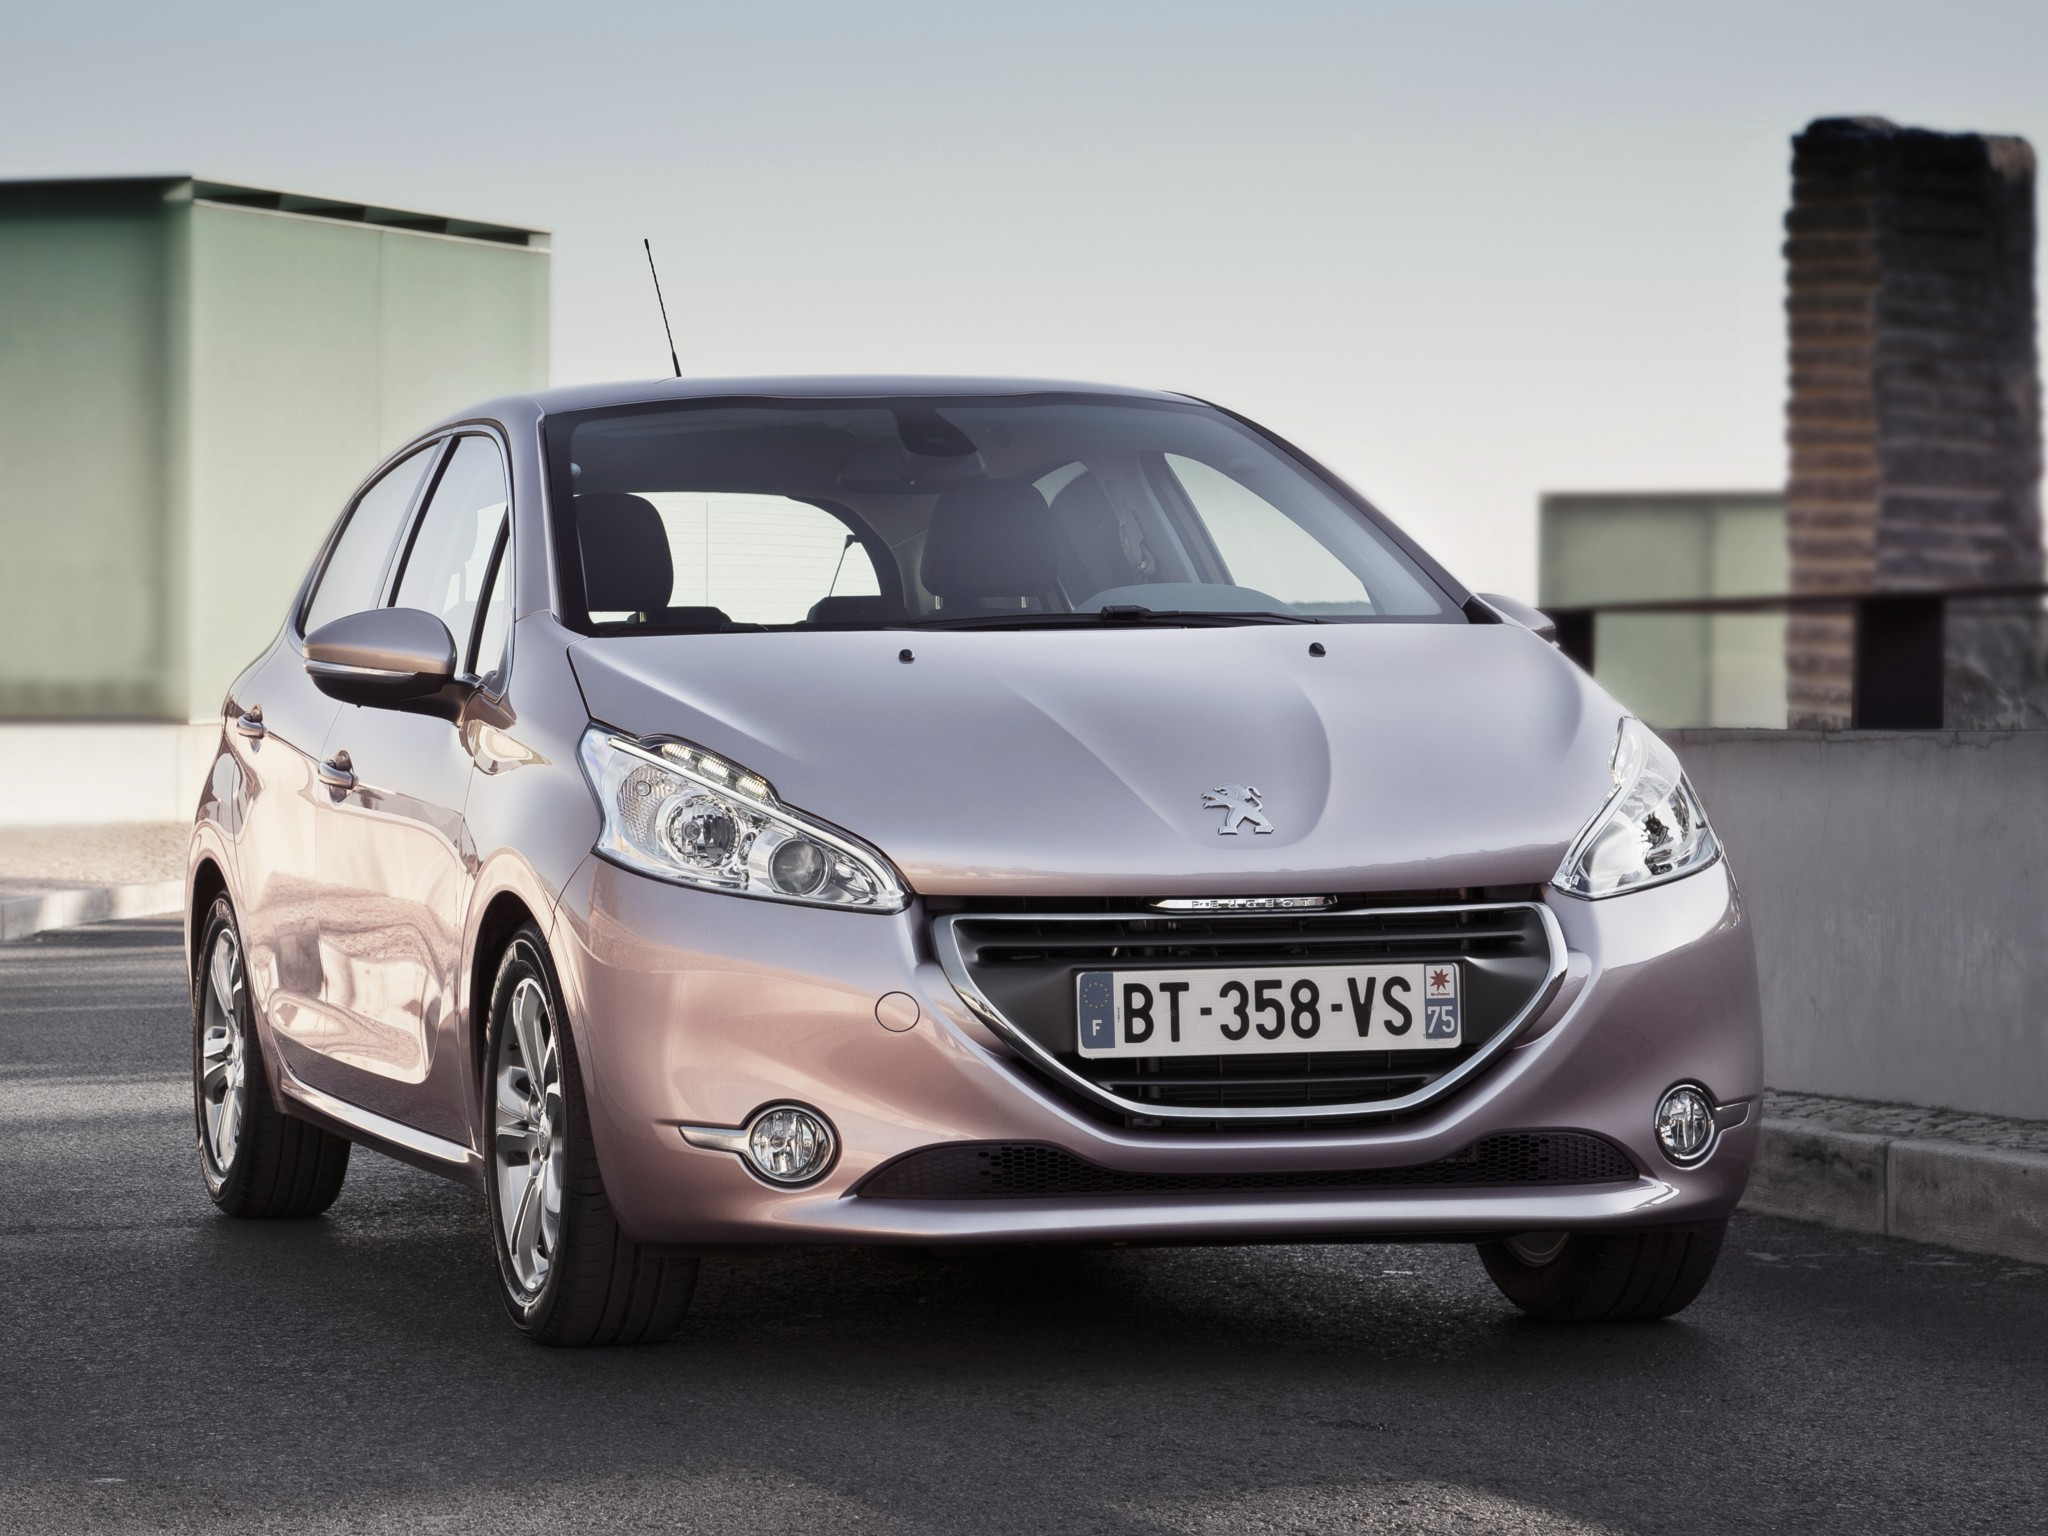 peugeot 208 5 doors specs 2012 2013 2014 2015 2016 2017 2018 autoevolution. Black Bedroom Furniture Sets. Home Design Ideas